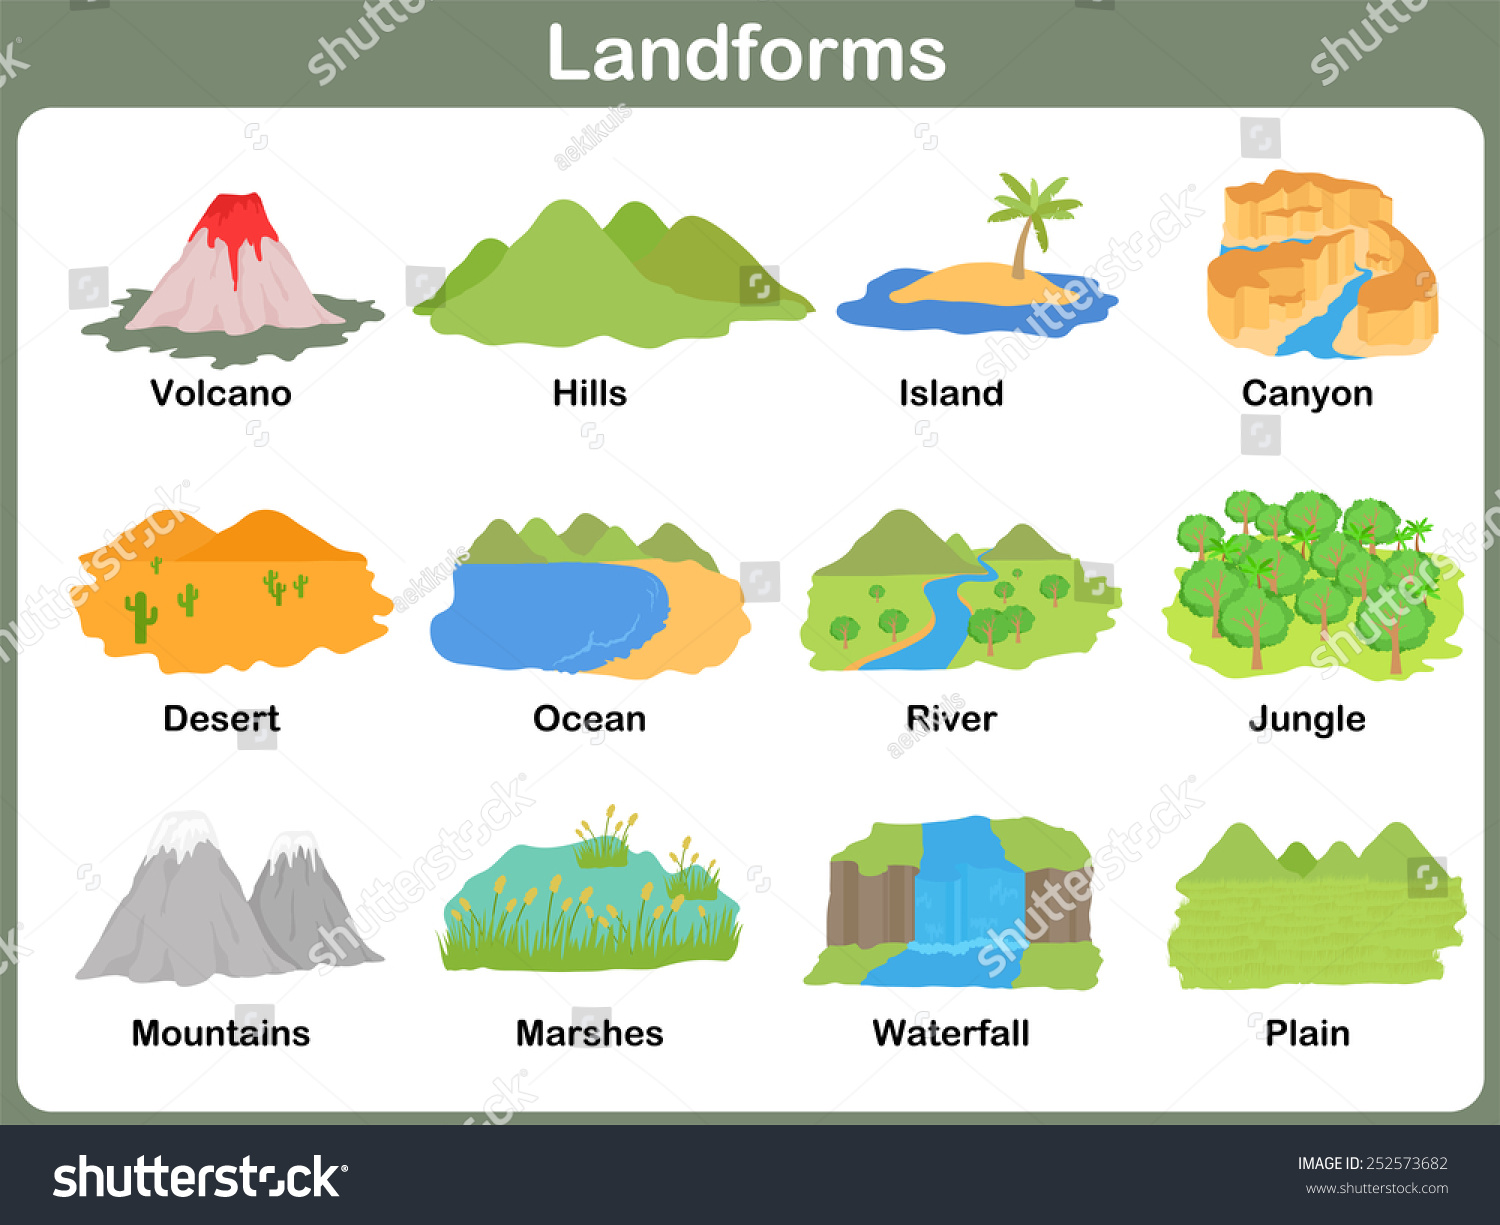 Printables. Worksheets On Landforms. safarmediapps Worksheets Printables